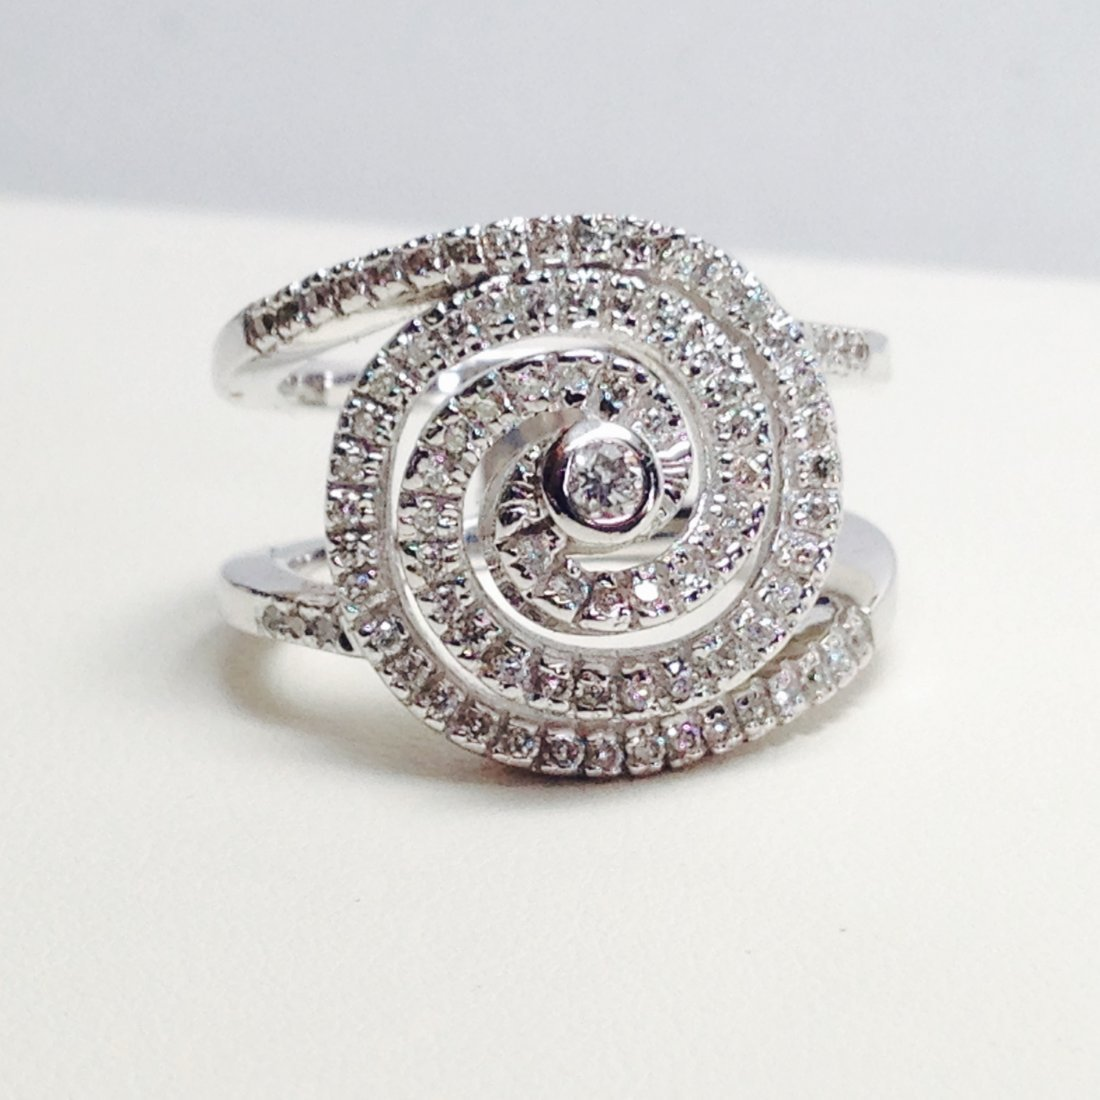 18k White Gold Diamond Swirl Ring